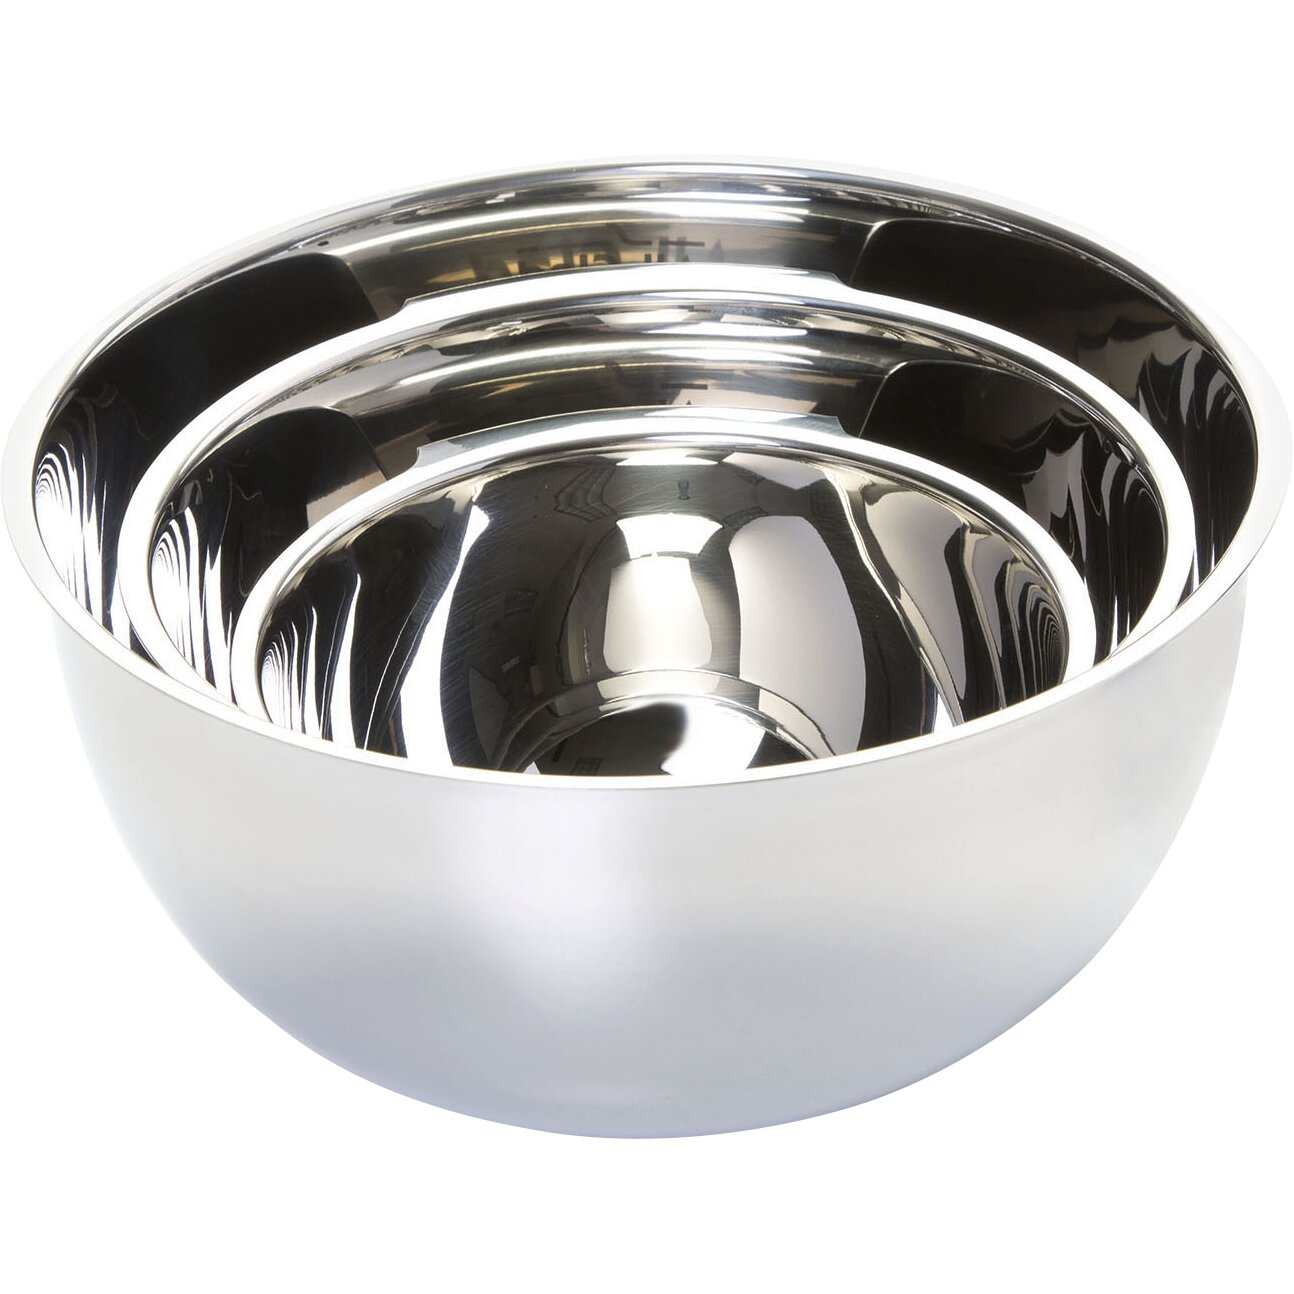 Cuisinart stainless steel mixing bowls with lids - All Clad 3 Piece Mixing Bowl Set